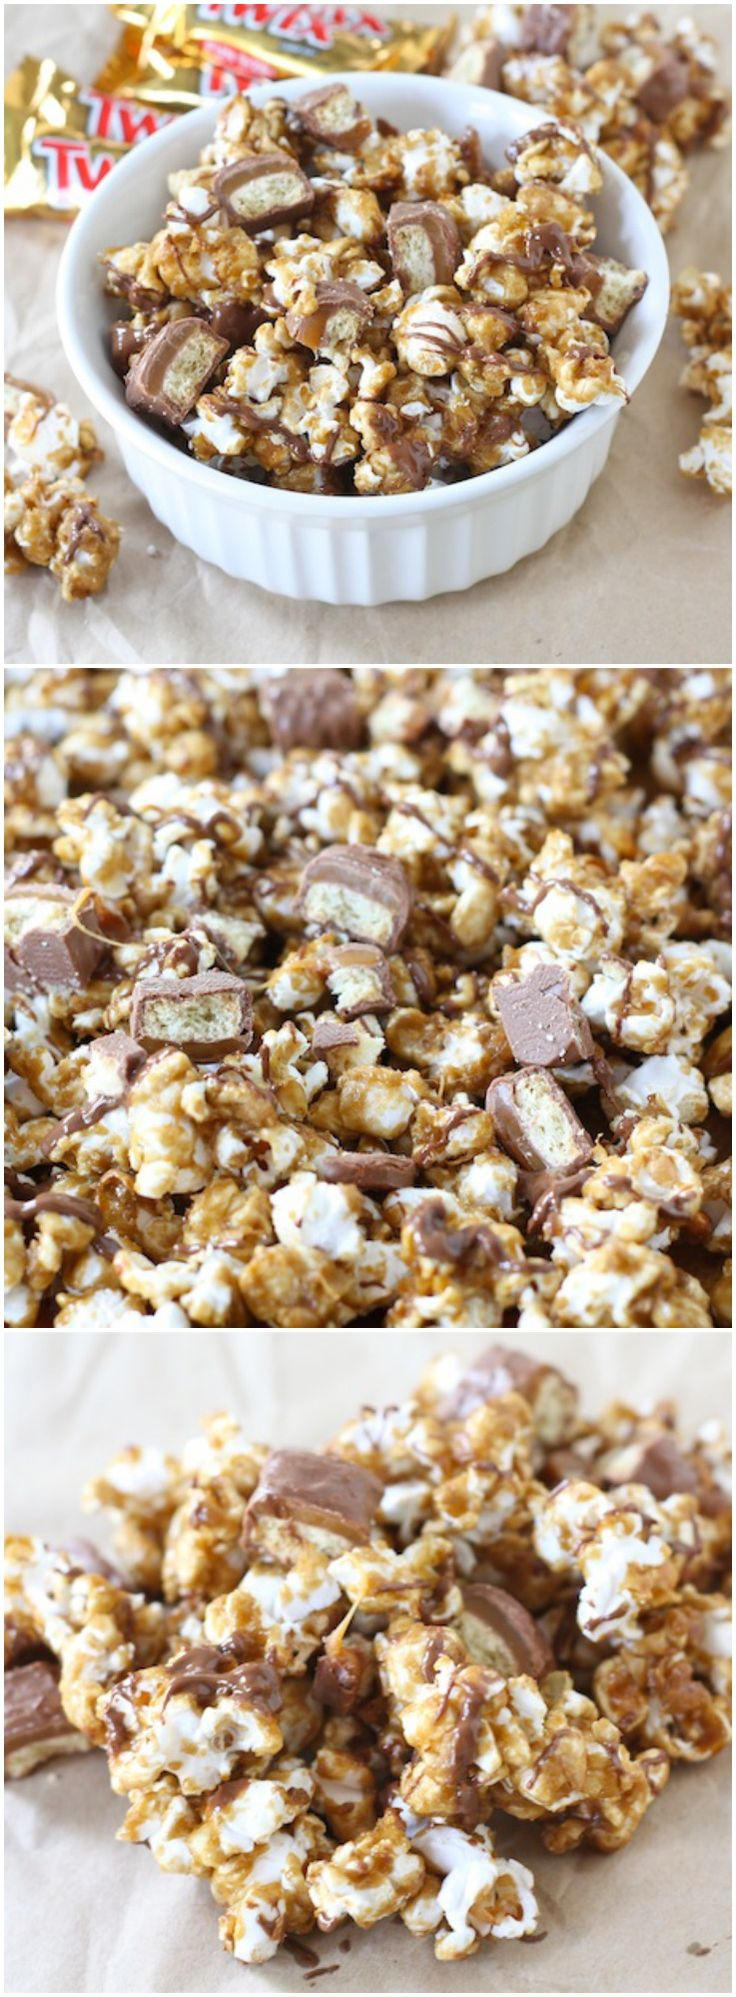 Twix Caramel Popcorn Recipe on twopeasandtheirpod.com This sweet popcorn is perfect for snacking!